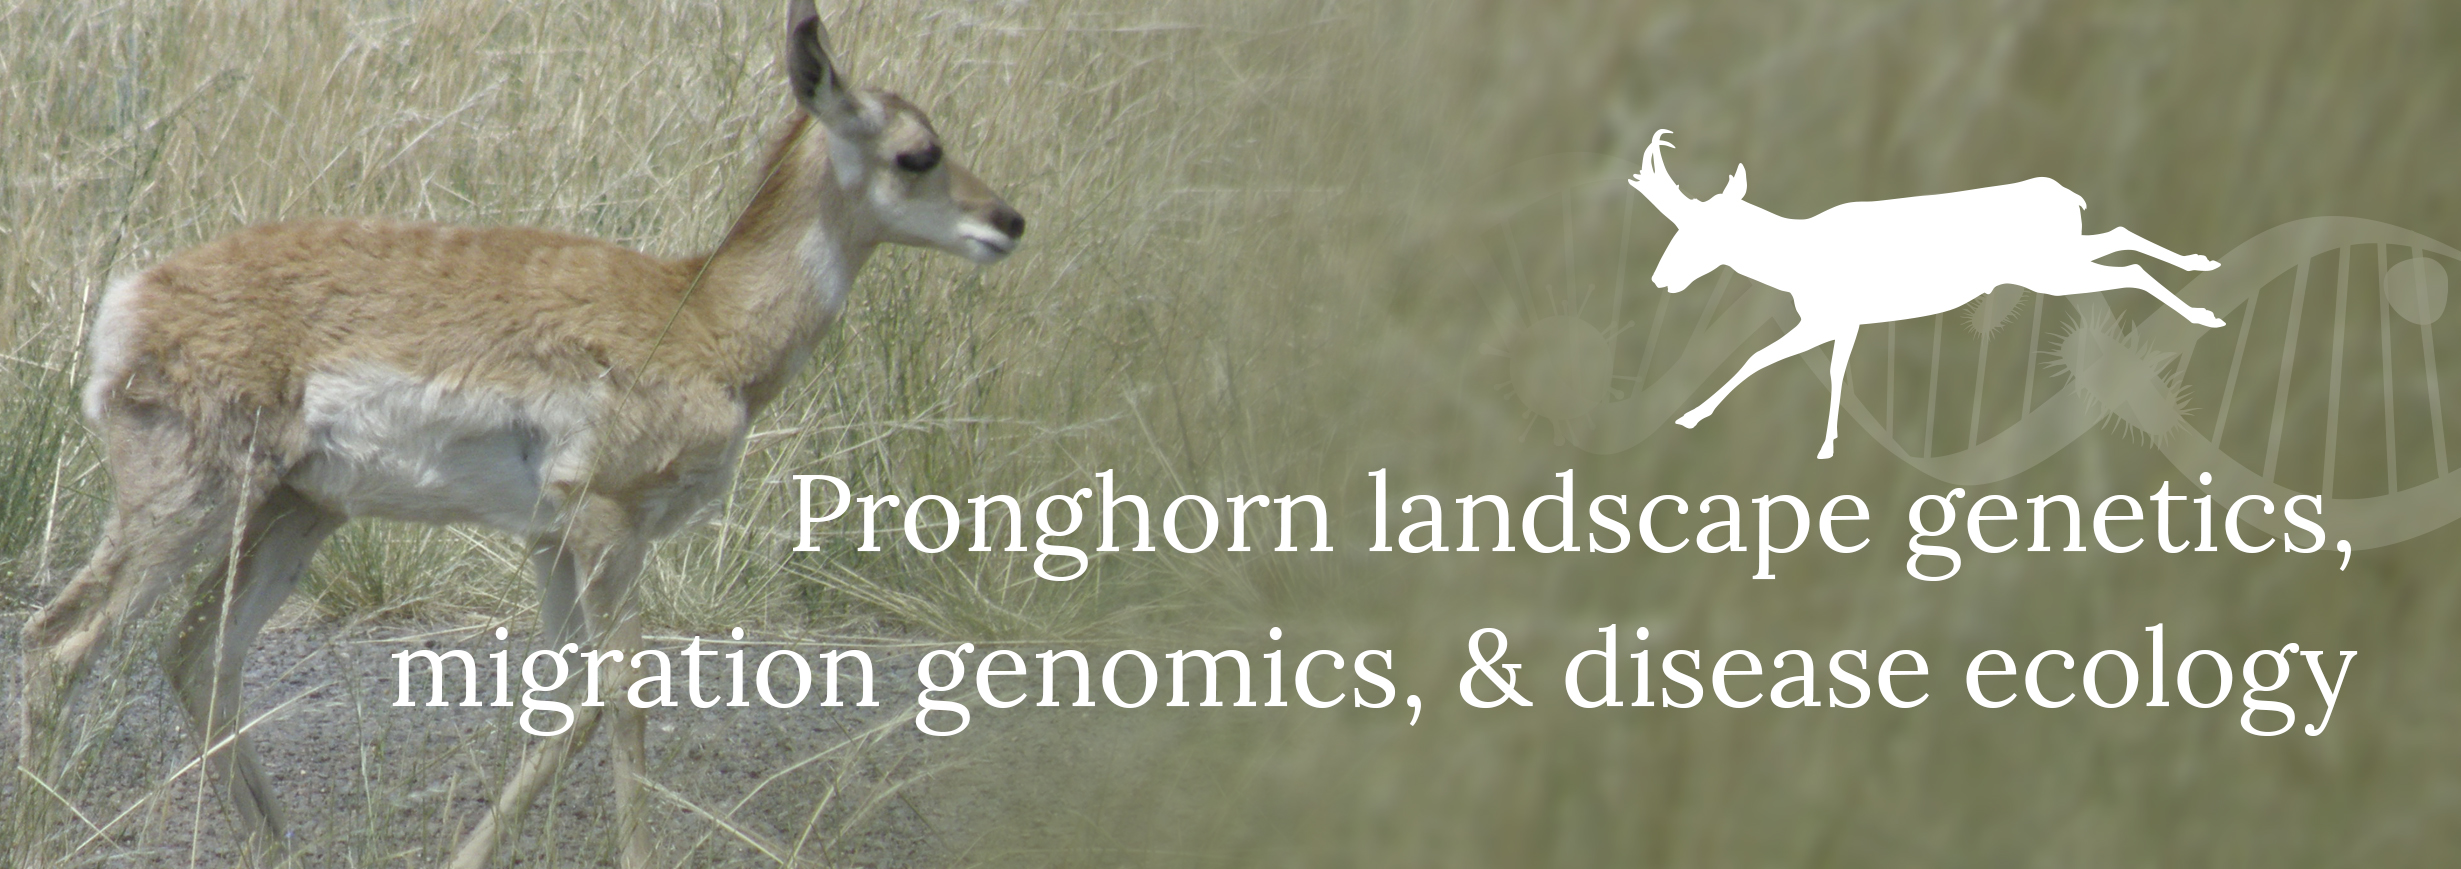 Pronghorn landscape genetics, migration genomics, and disease ecology